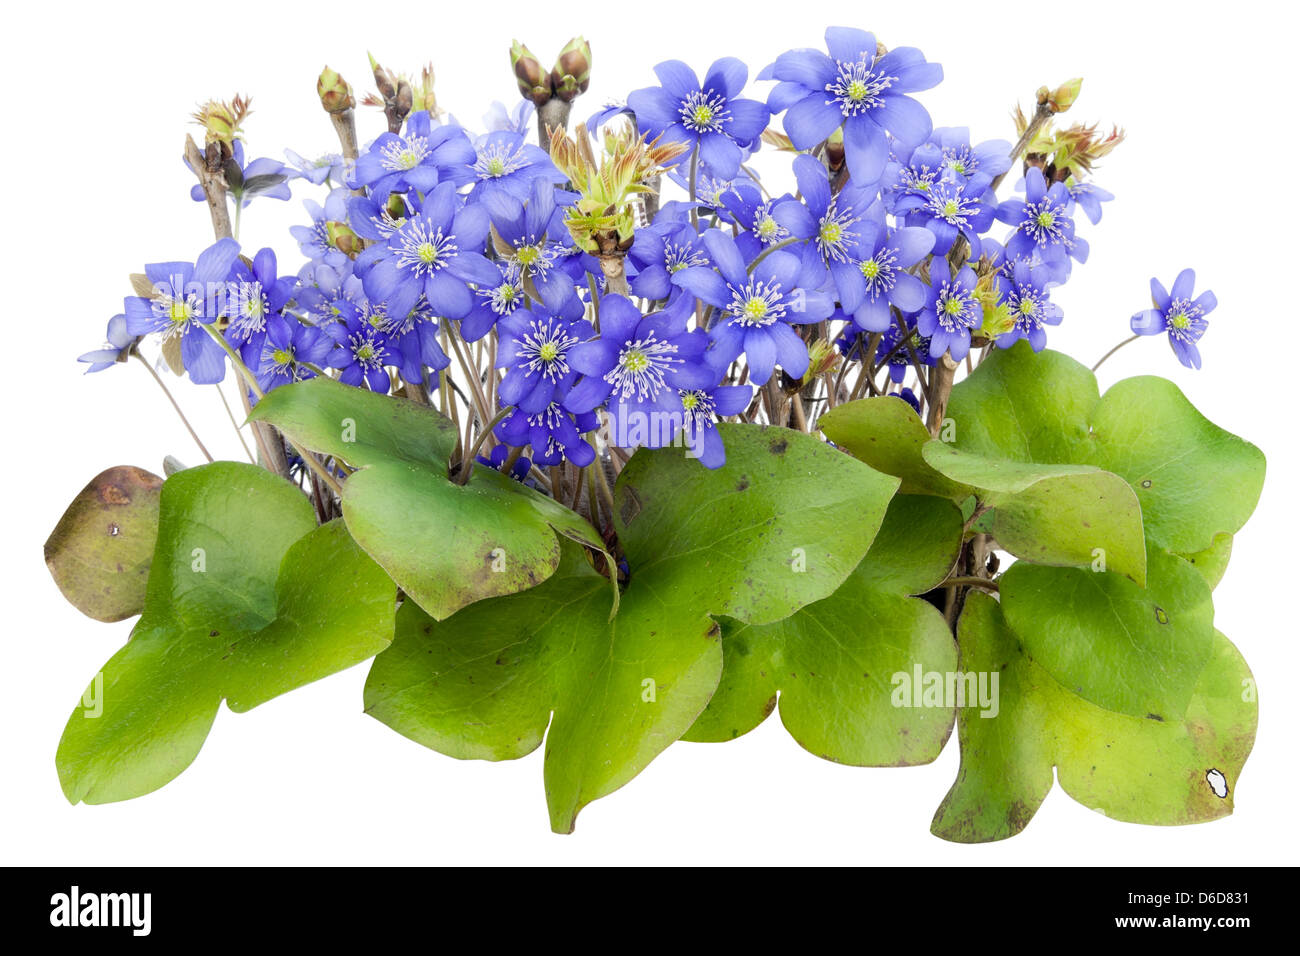 Bush of real first springs flowers isolated stock photo 55610773 bush of real first springs flowers isolated mightylinksfo